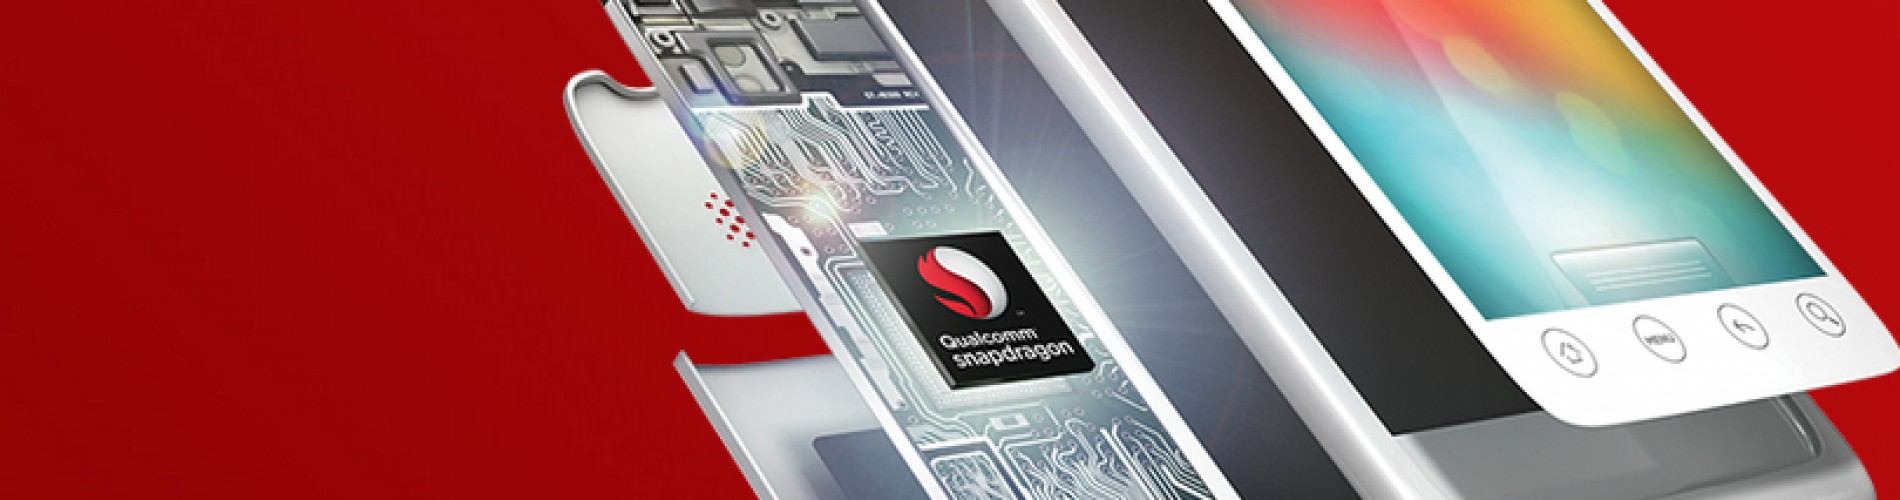 Qualcomm Snapdragon 820 processor to offer malware protection